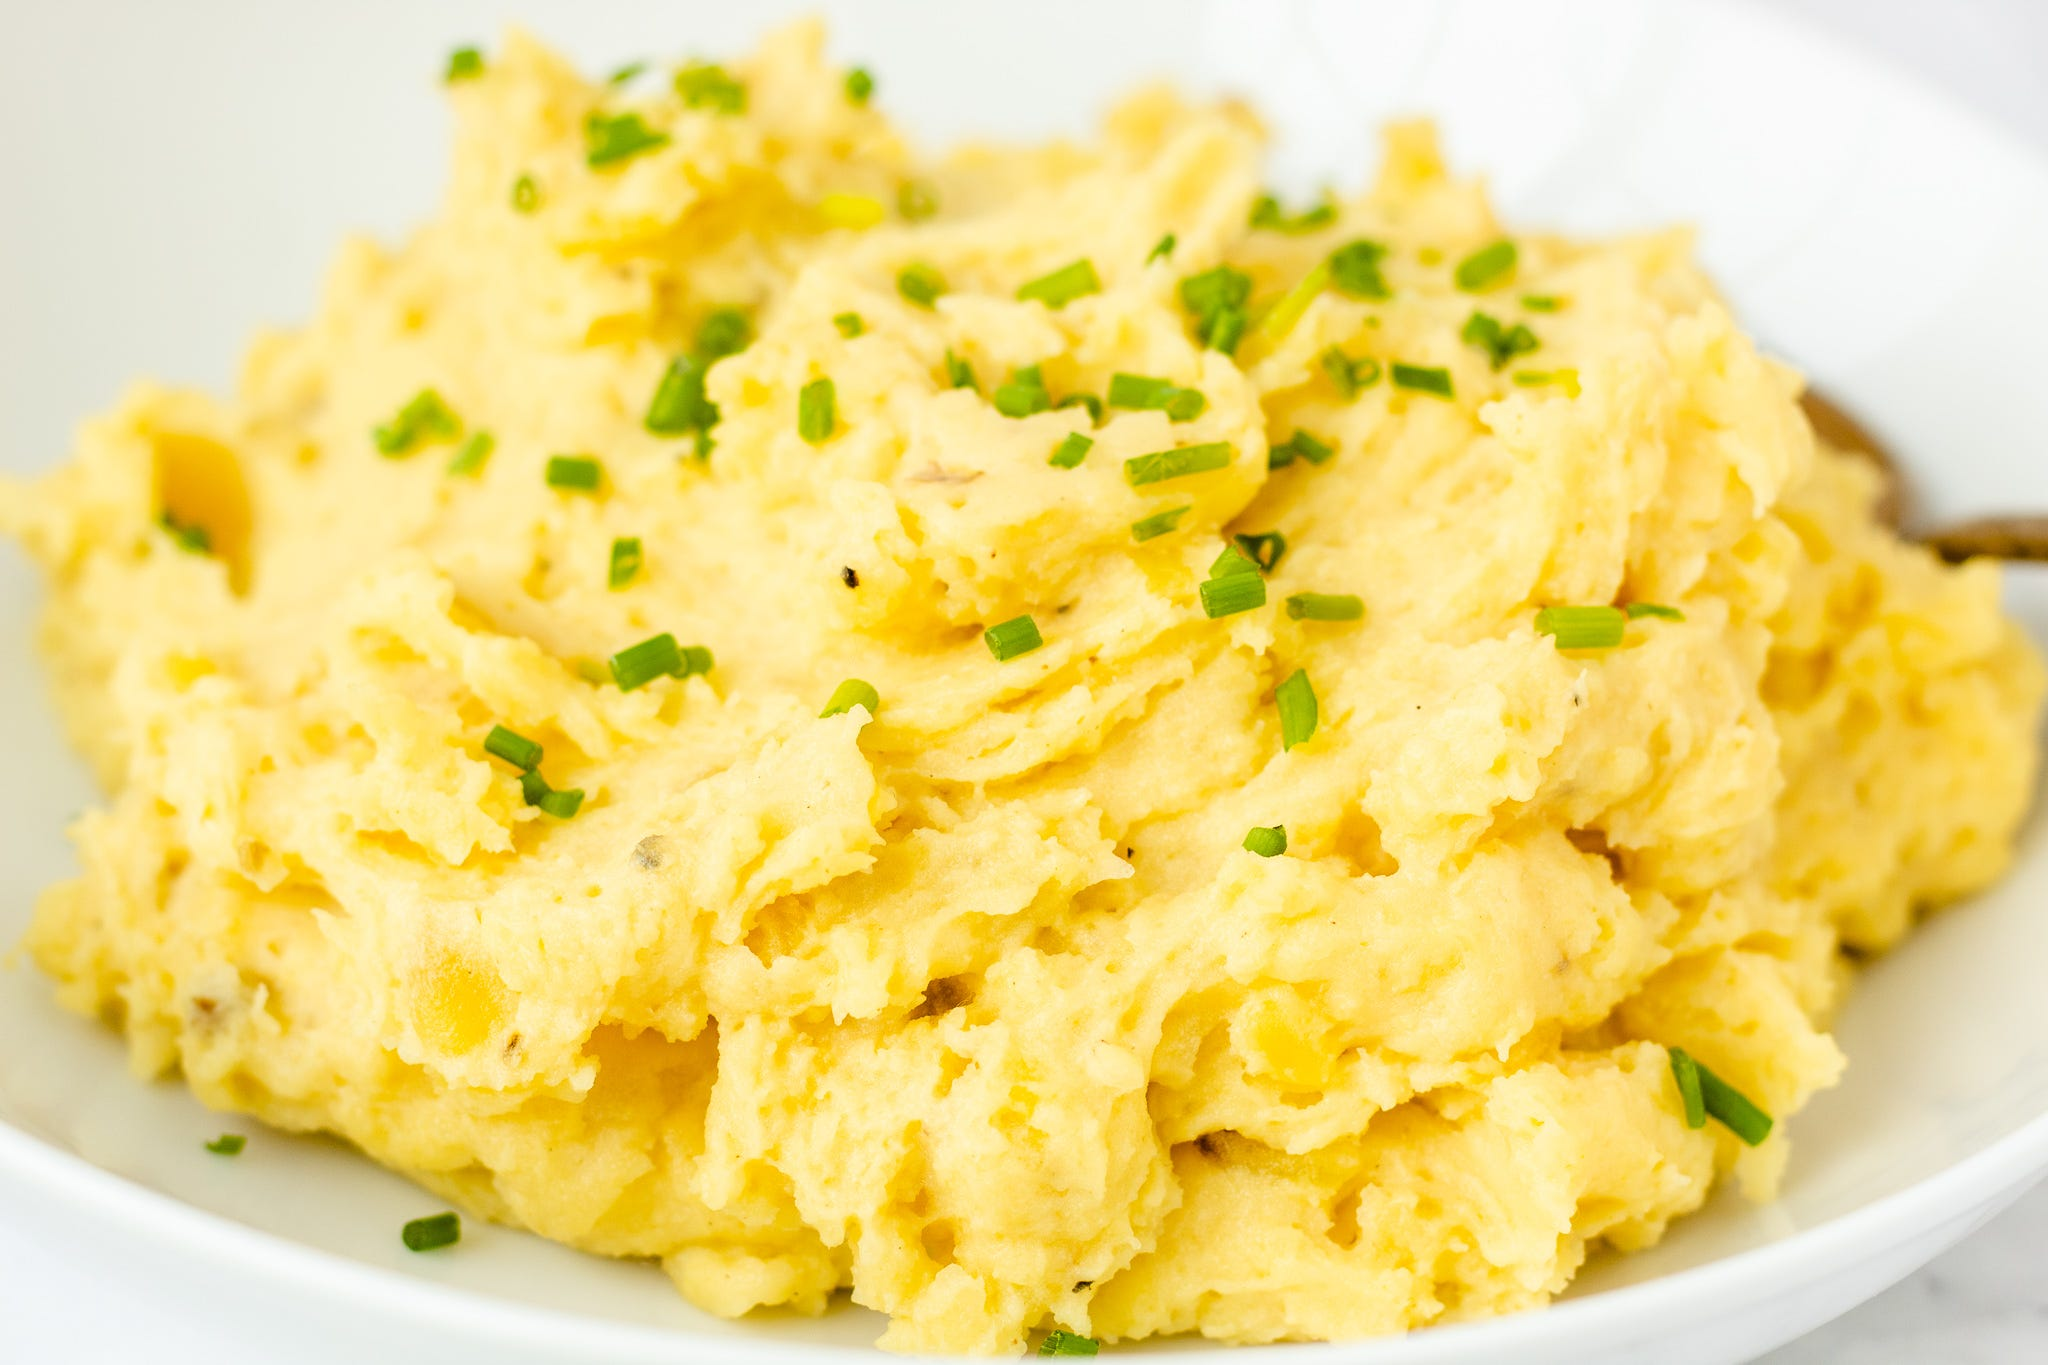 Buttery mashed potatoes with chives sprinkled on top.